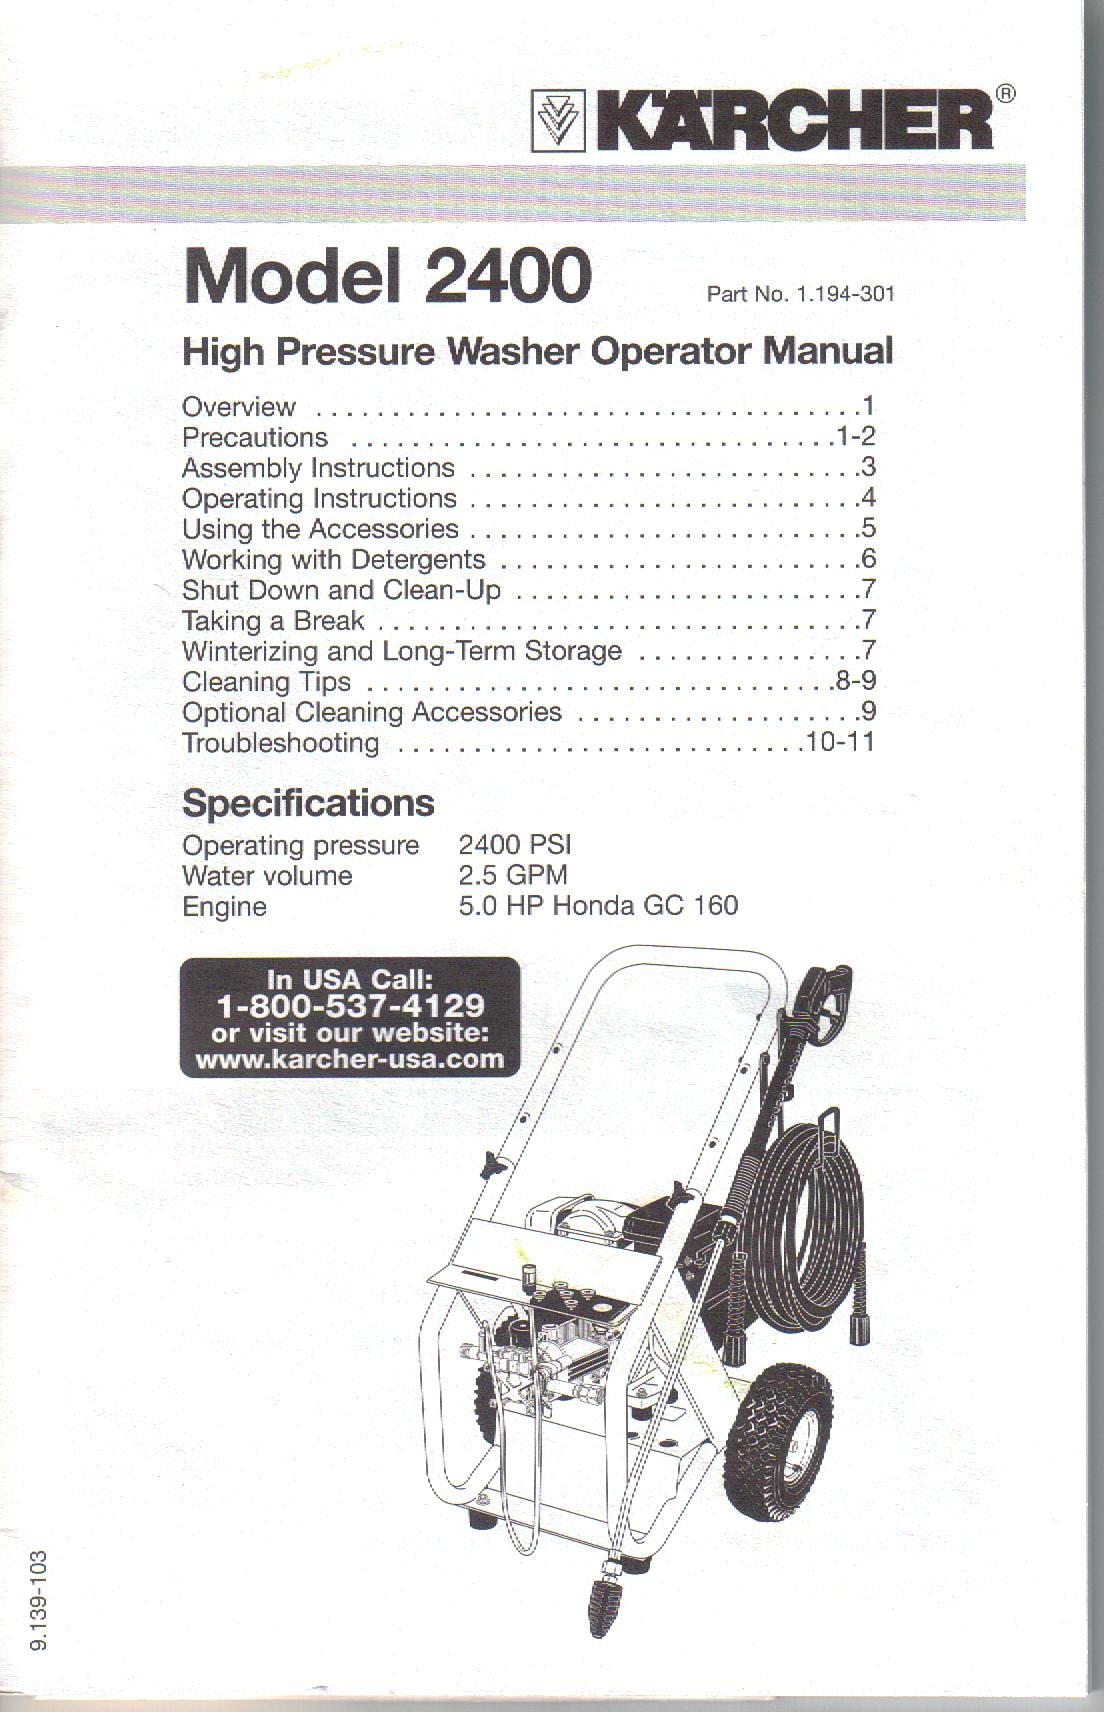 KARCHER Model 2400 High Pressure Washer Operator Manual Owner's Guide:  Kärcher: Amazon.com: Books